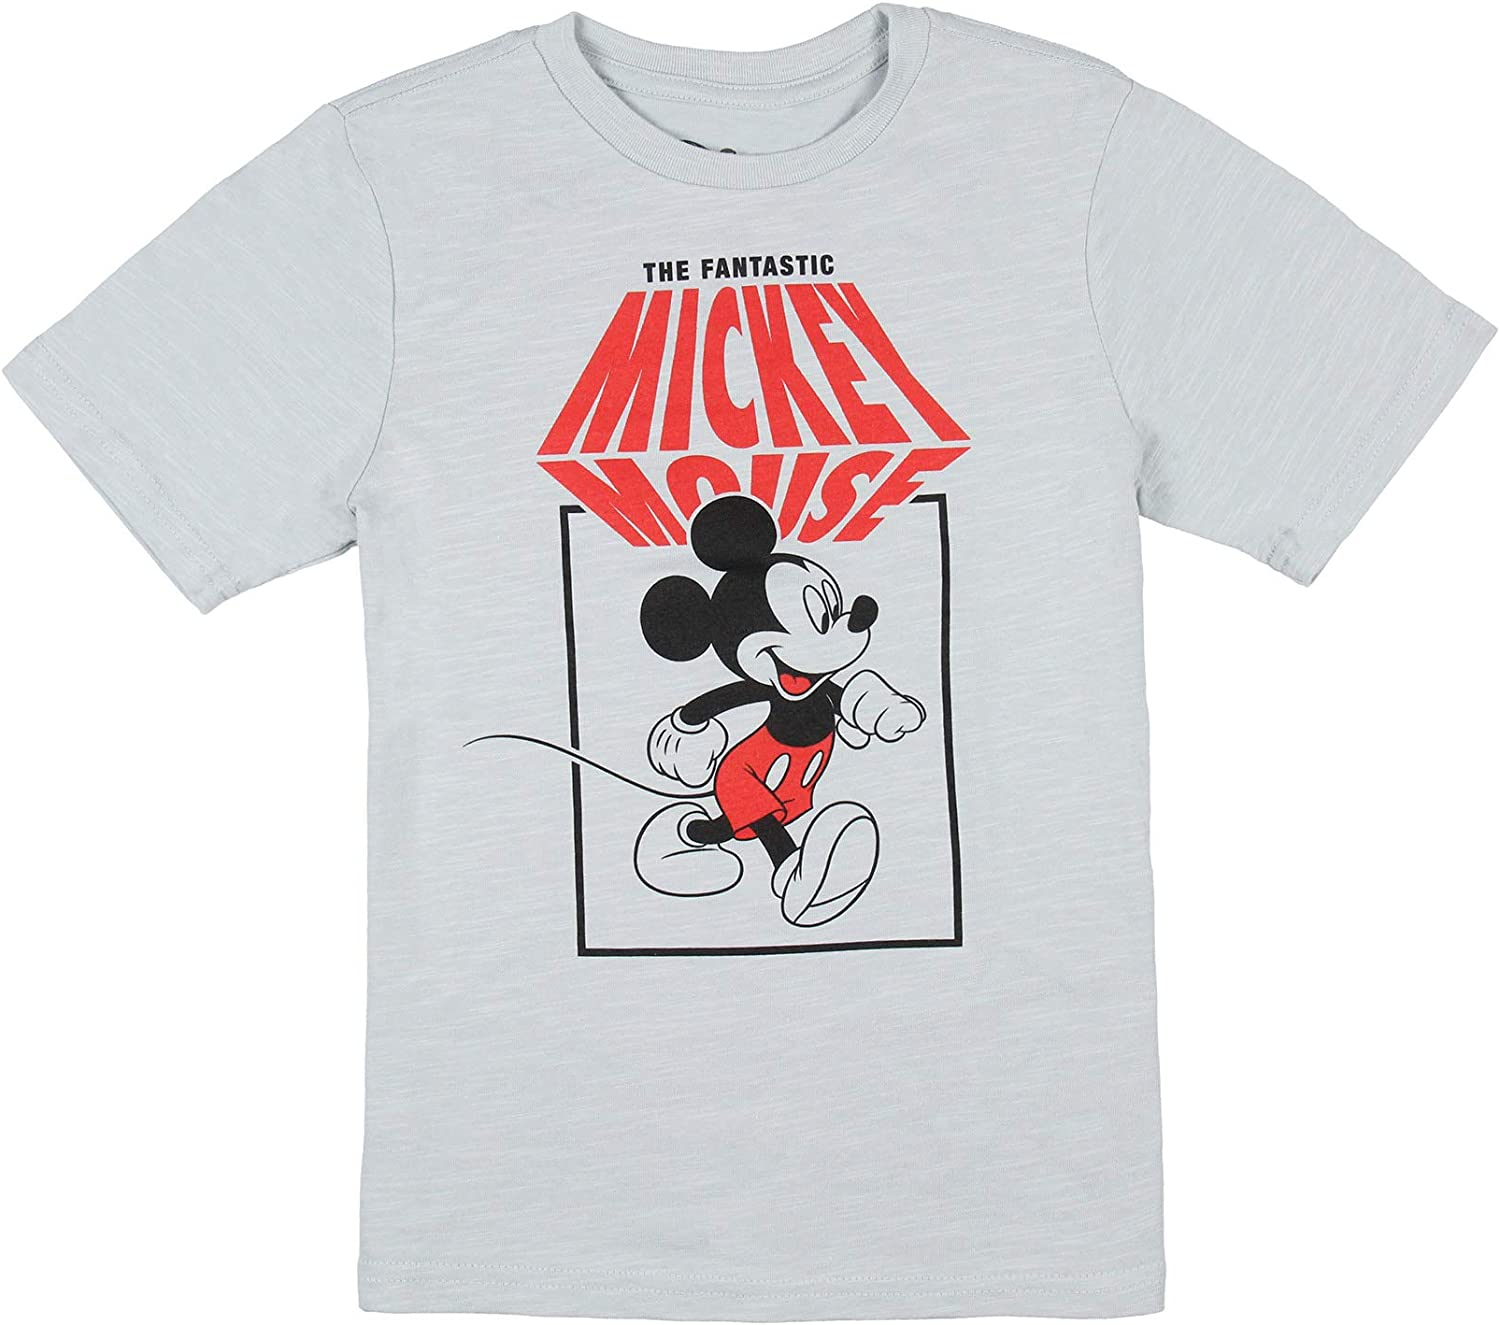 Disney Boy's The Fantastic Mickey Mouse Character Graphic T-Shirt